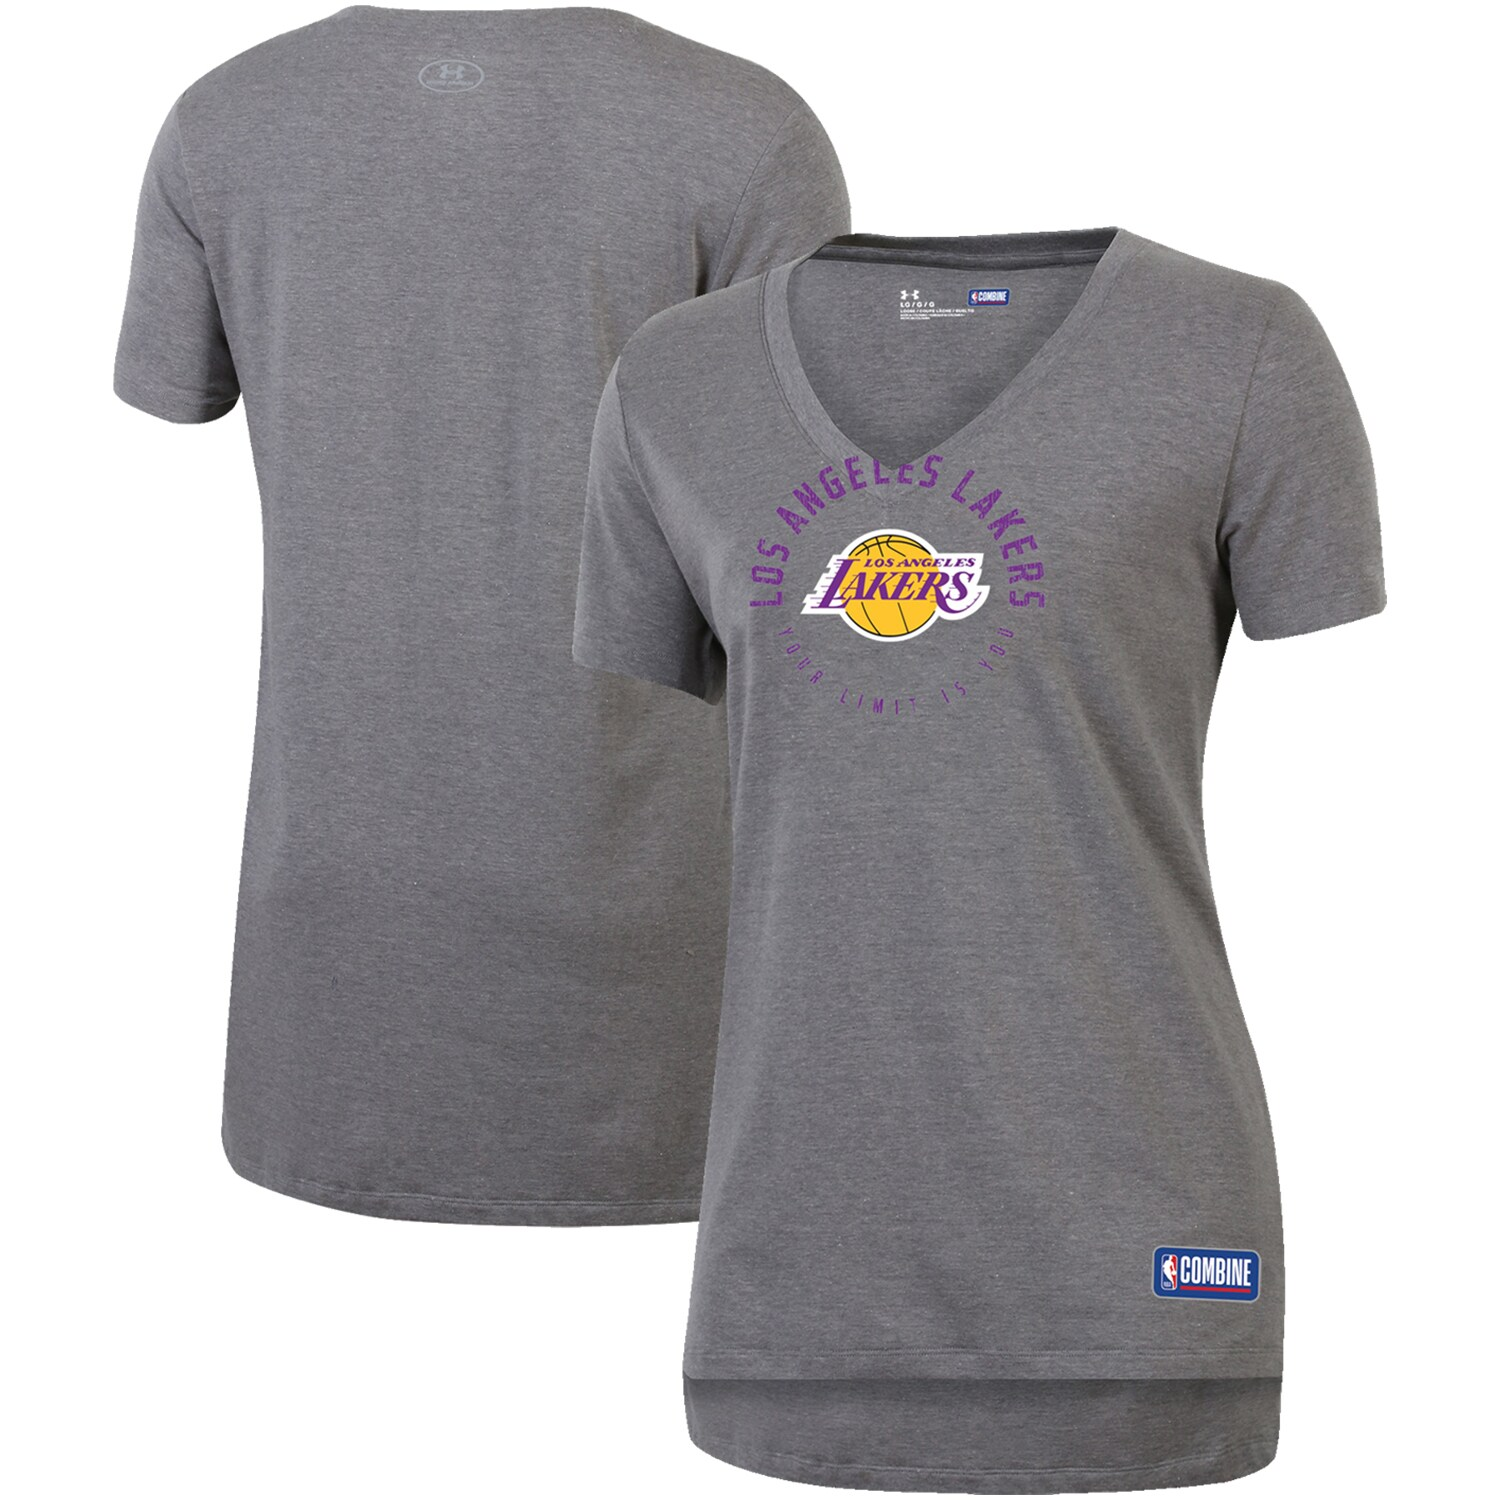 Los Angeles Lakers Under Armour Women's Combine Authentic Your Limit Is You V-Neck T-Shirt - Heathered Gray